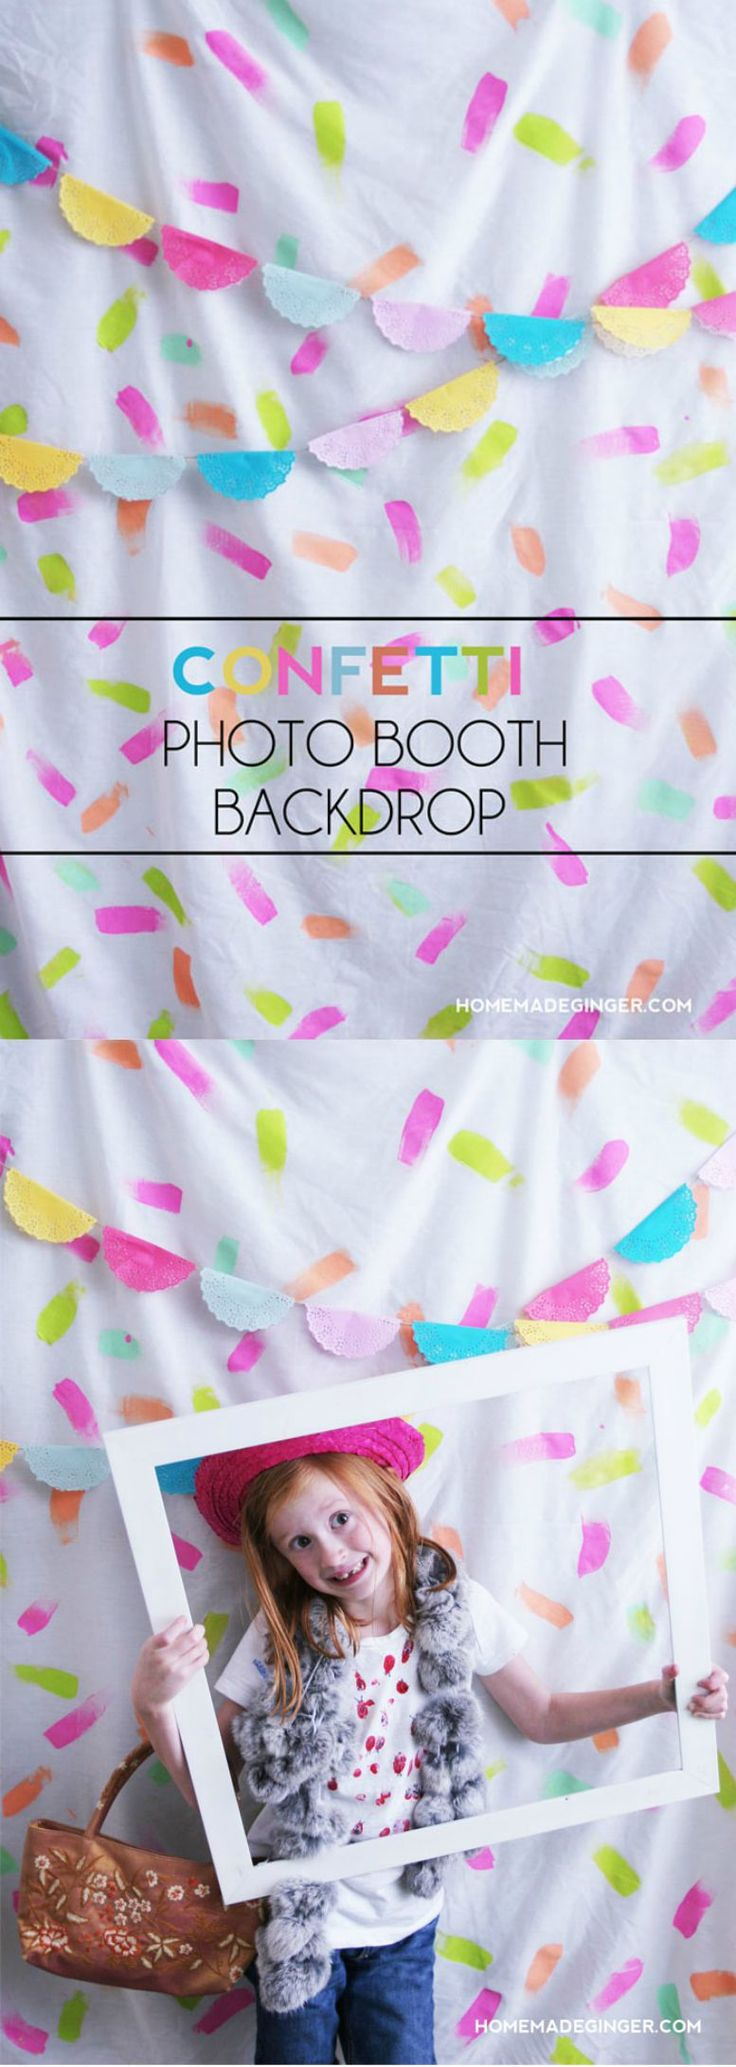 Make a quick photo booth backdrop using items you already have around the house. This is budget friendly and can be used again and again!